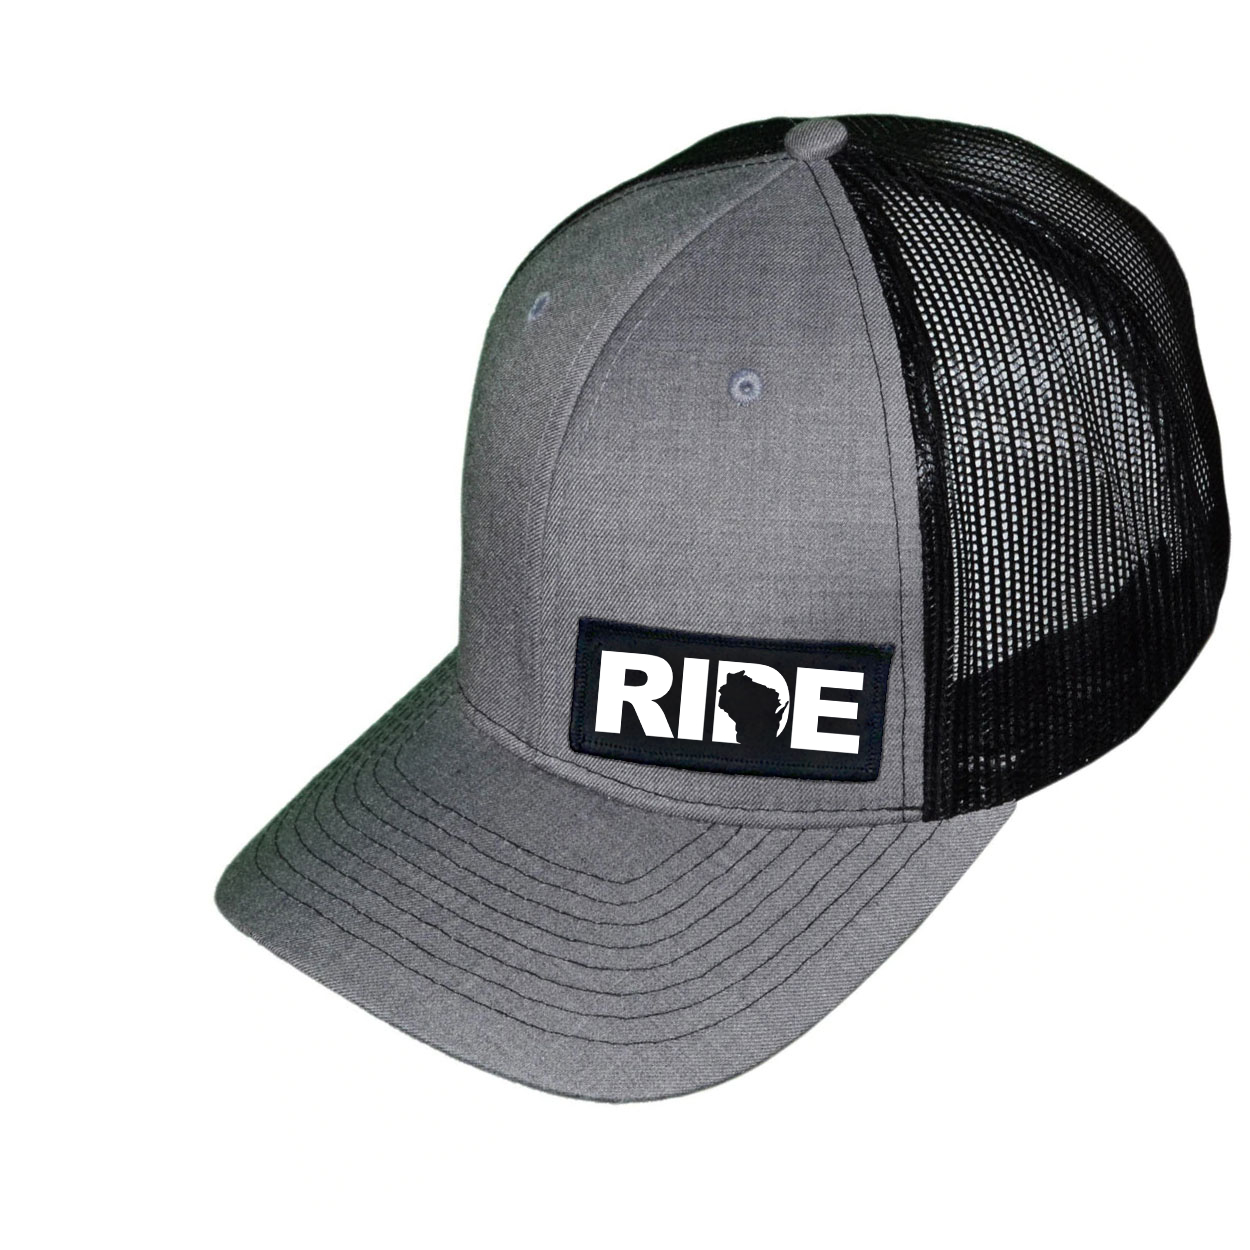 Ride Wisconsin Night Out Woven Patch Snapback Trucker Hat Heather Gray/Black (White Logo)